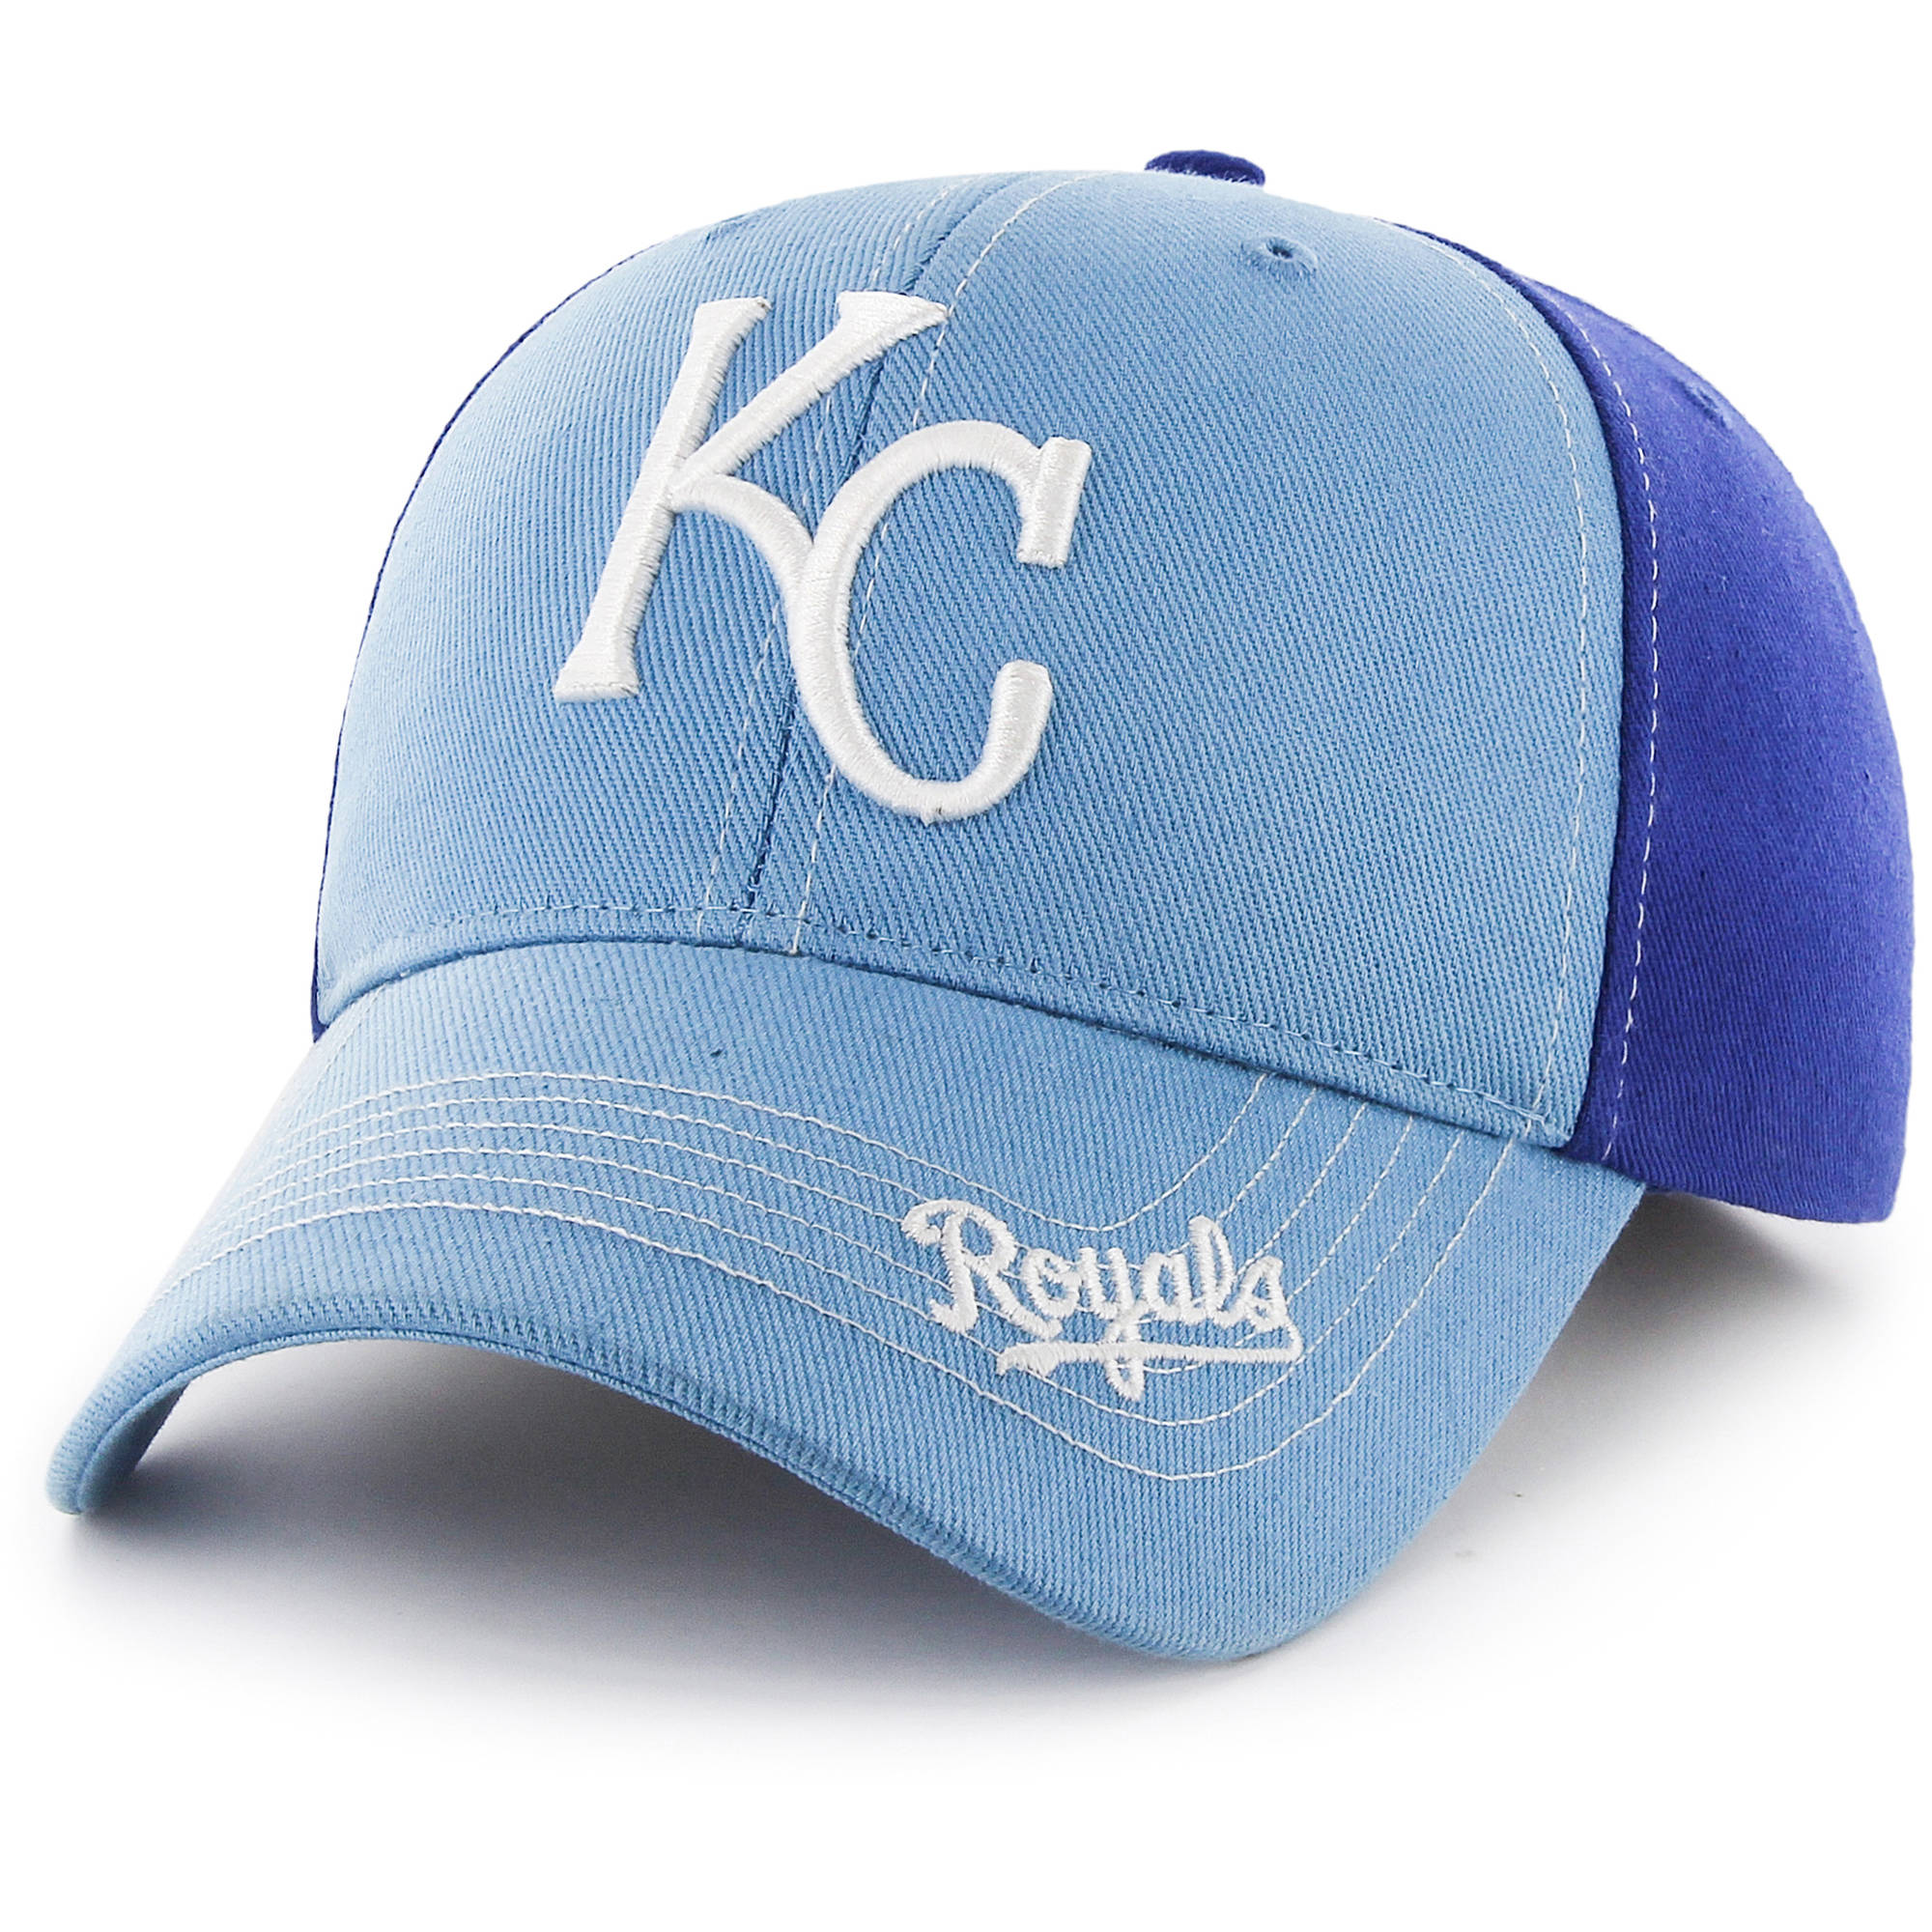 9a9609a8f3c Kansas City Royals Team Shop - Walmart.com